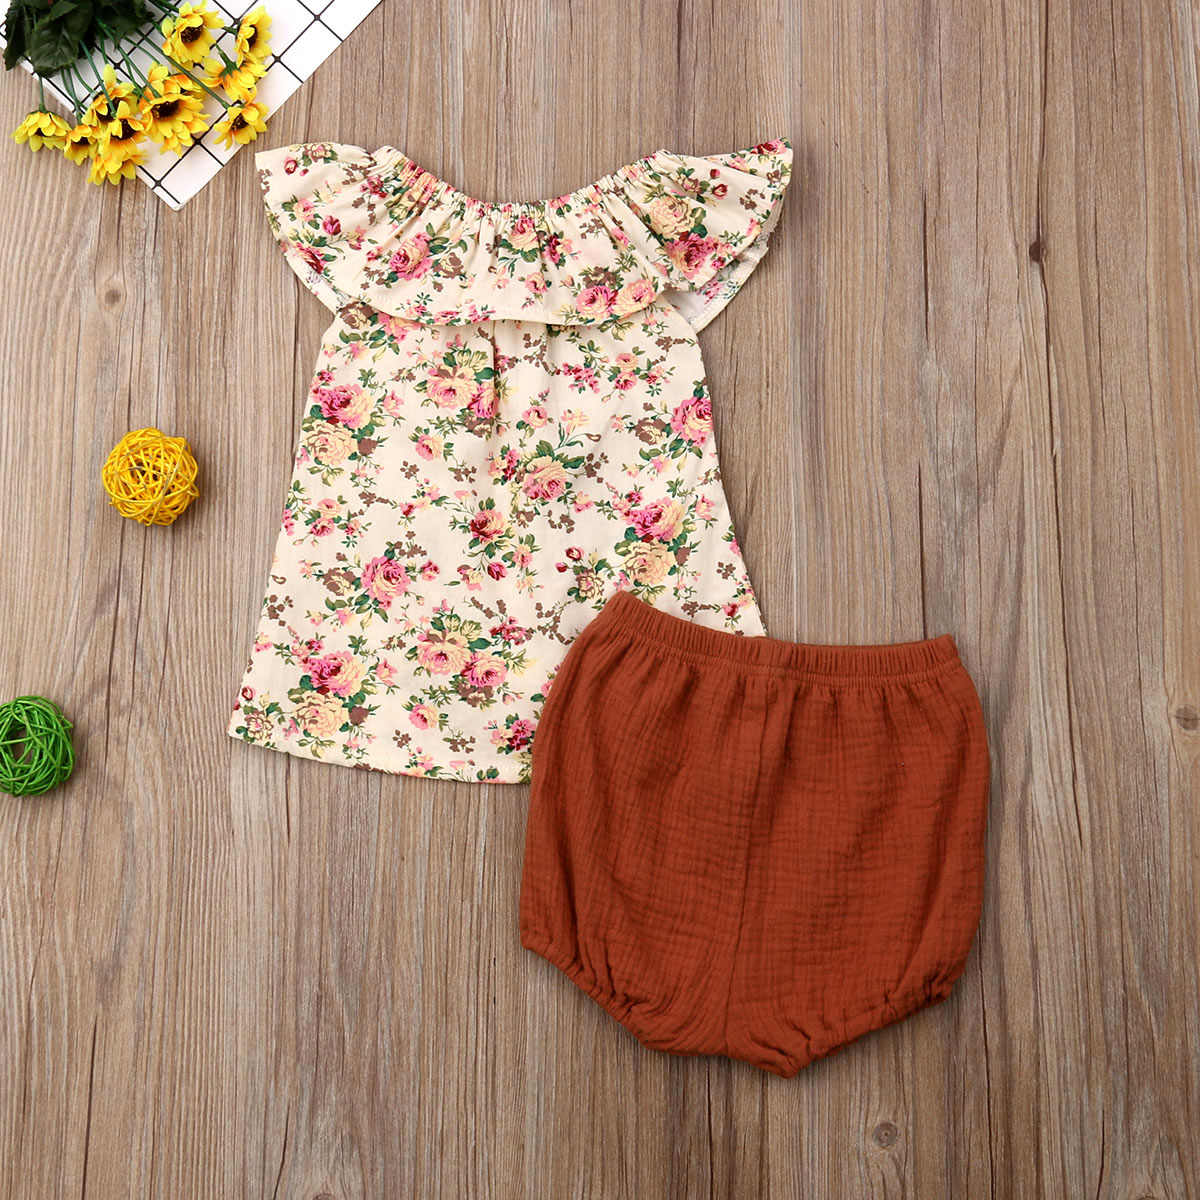 Newborn Toddler Baby Girls Tops Dress Shorts Pants Summer Outfits Clothes 0-24M